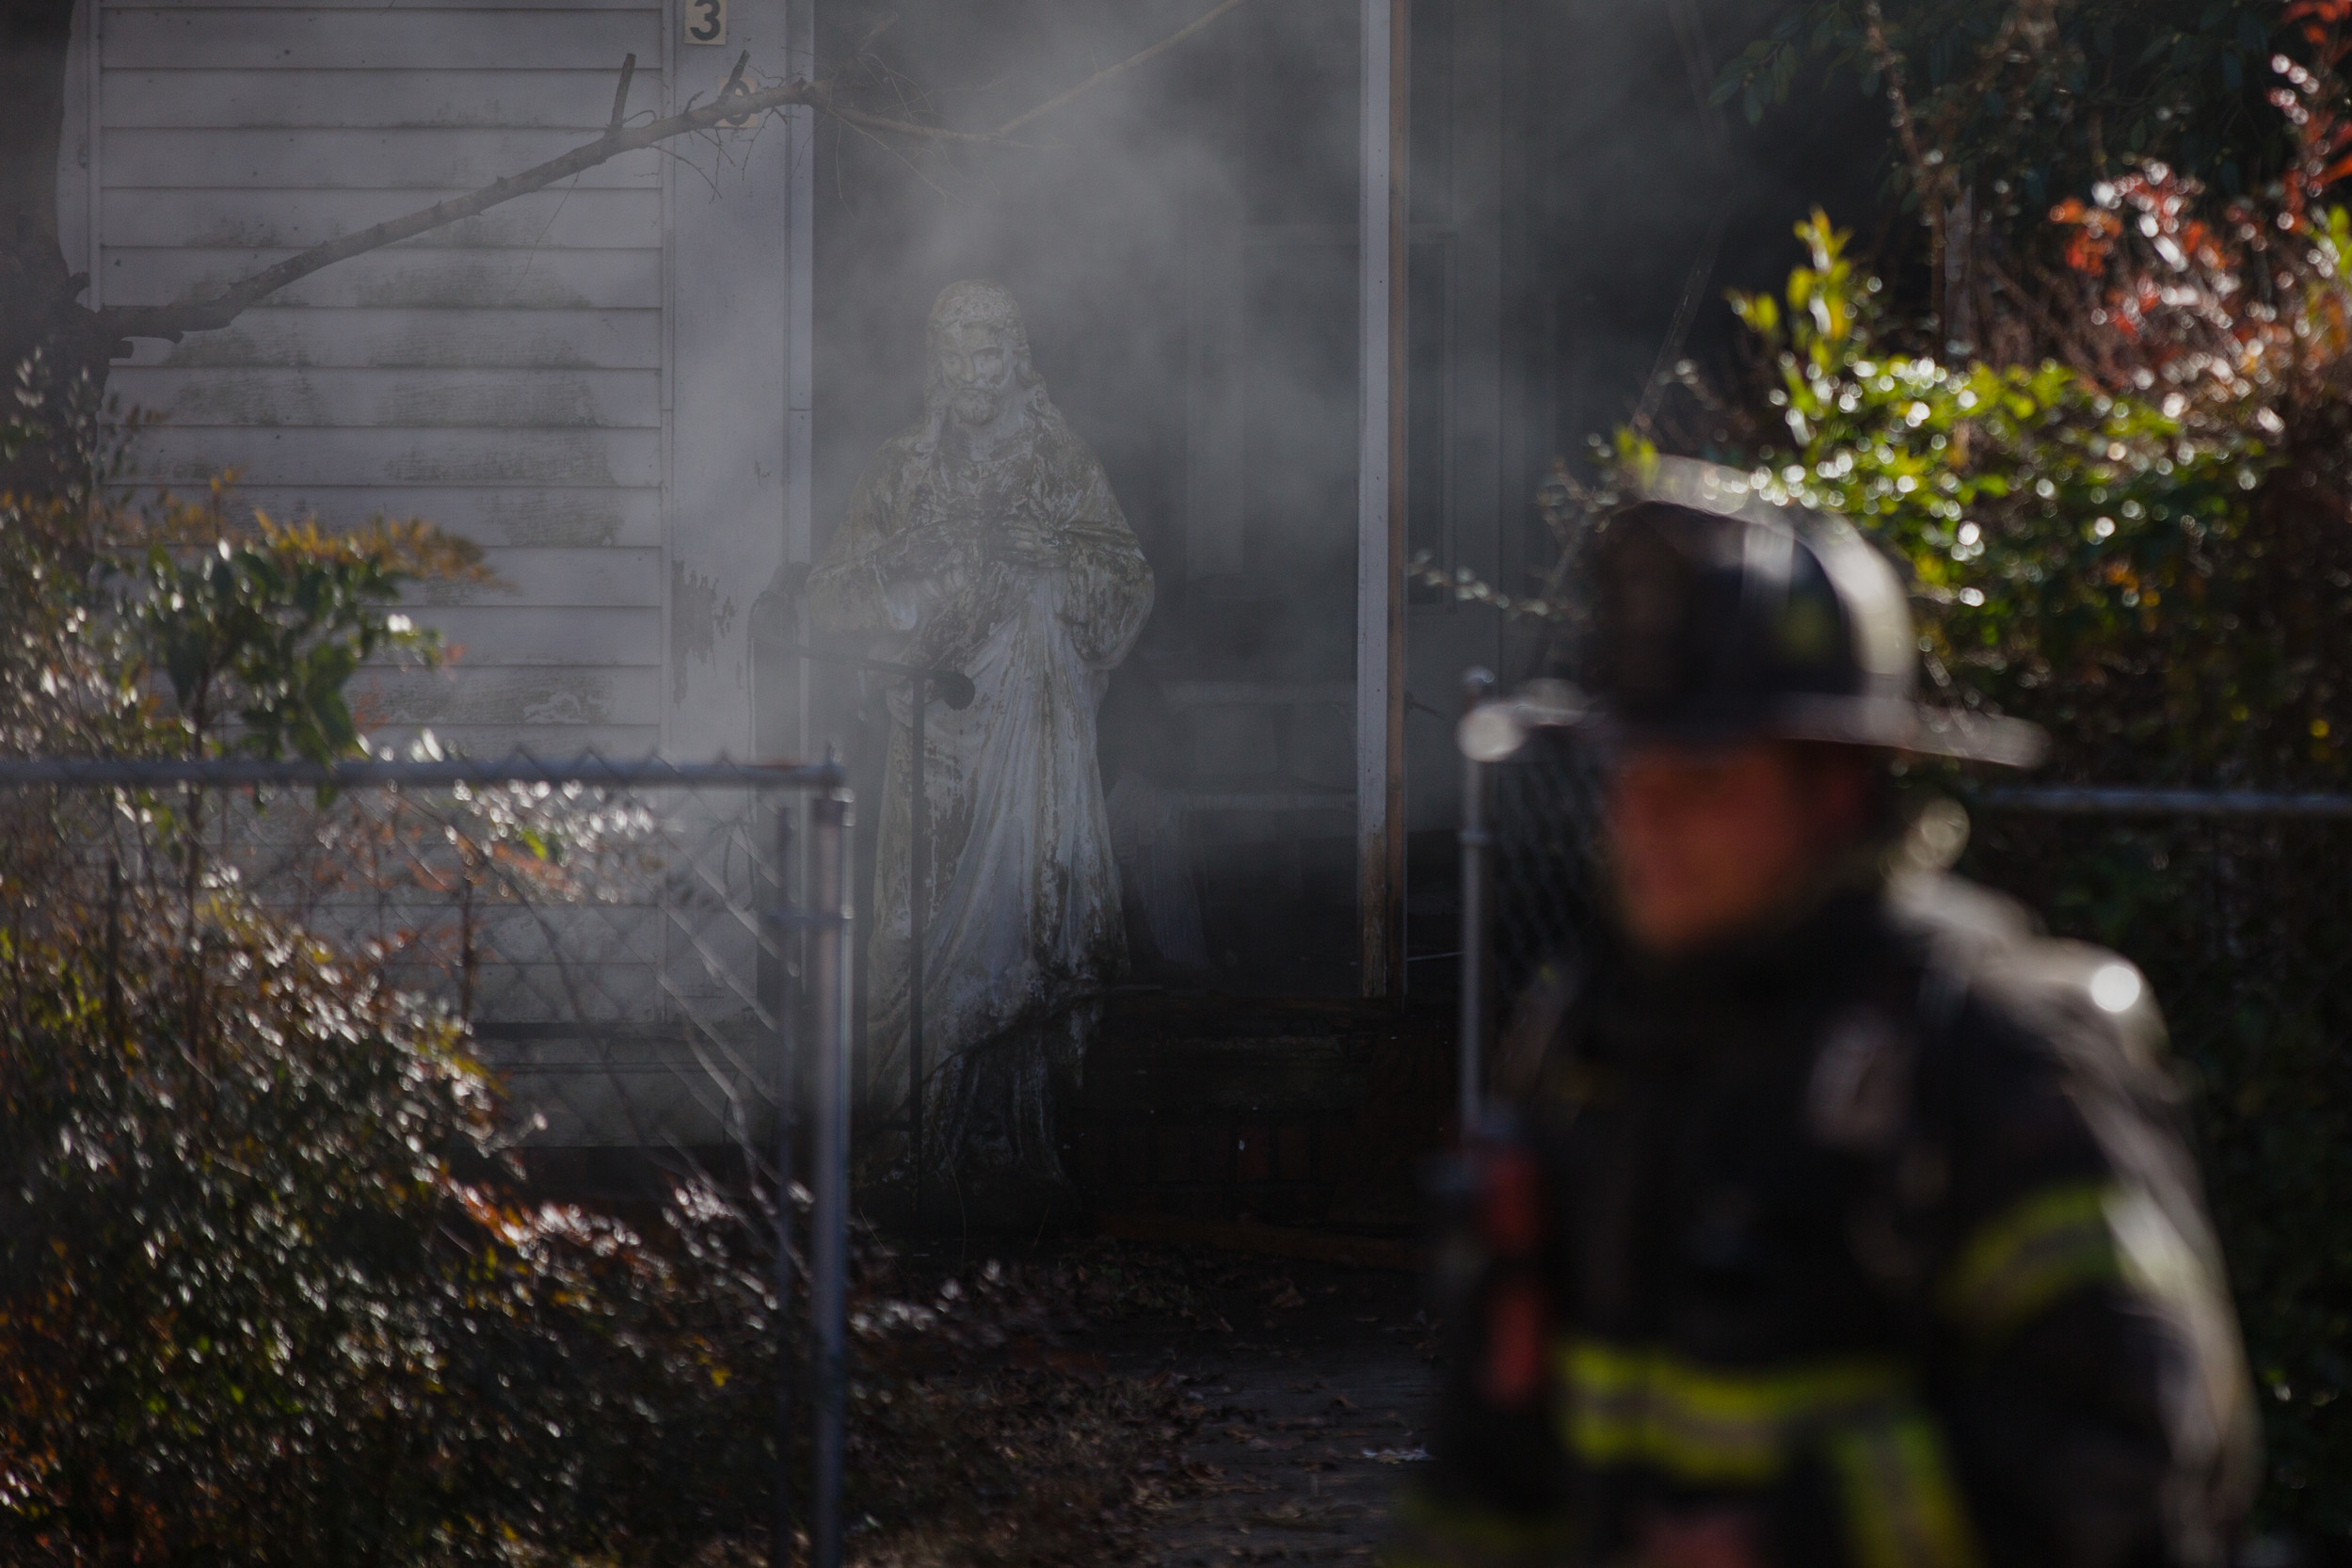 Firefighters work to fight back flames at a residential fire on McQueen St.